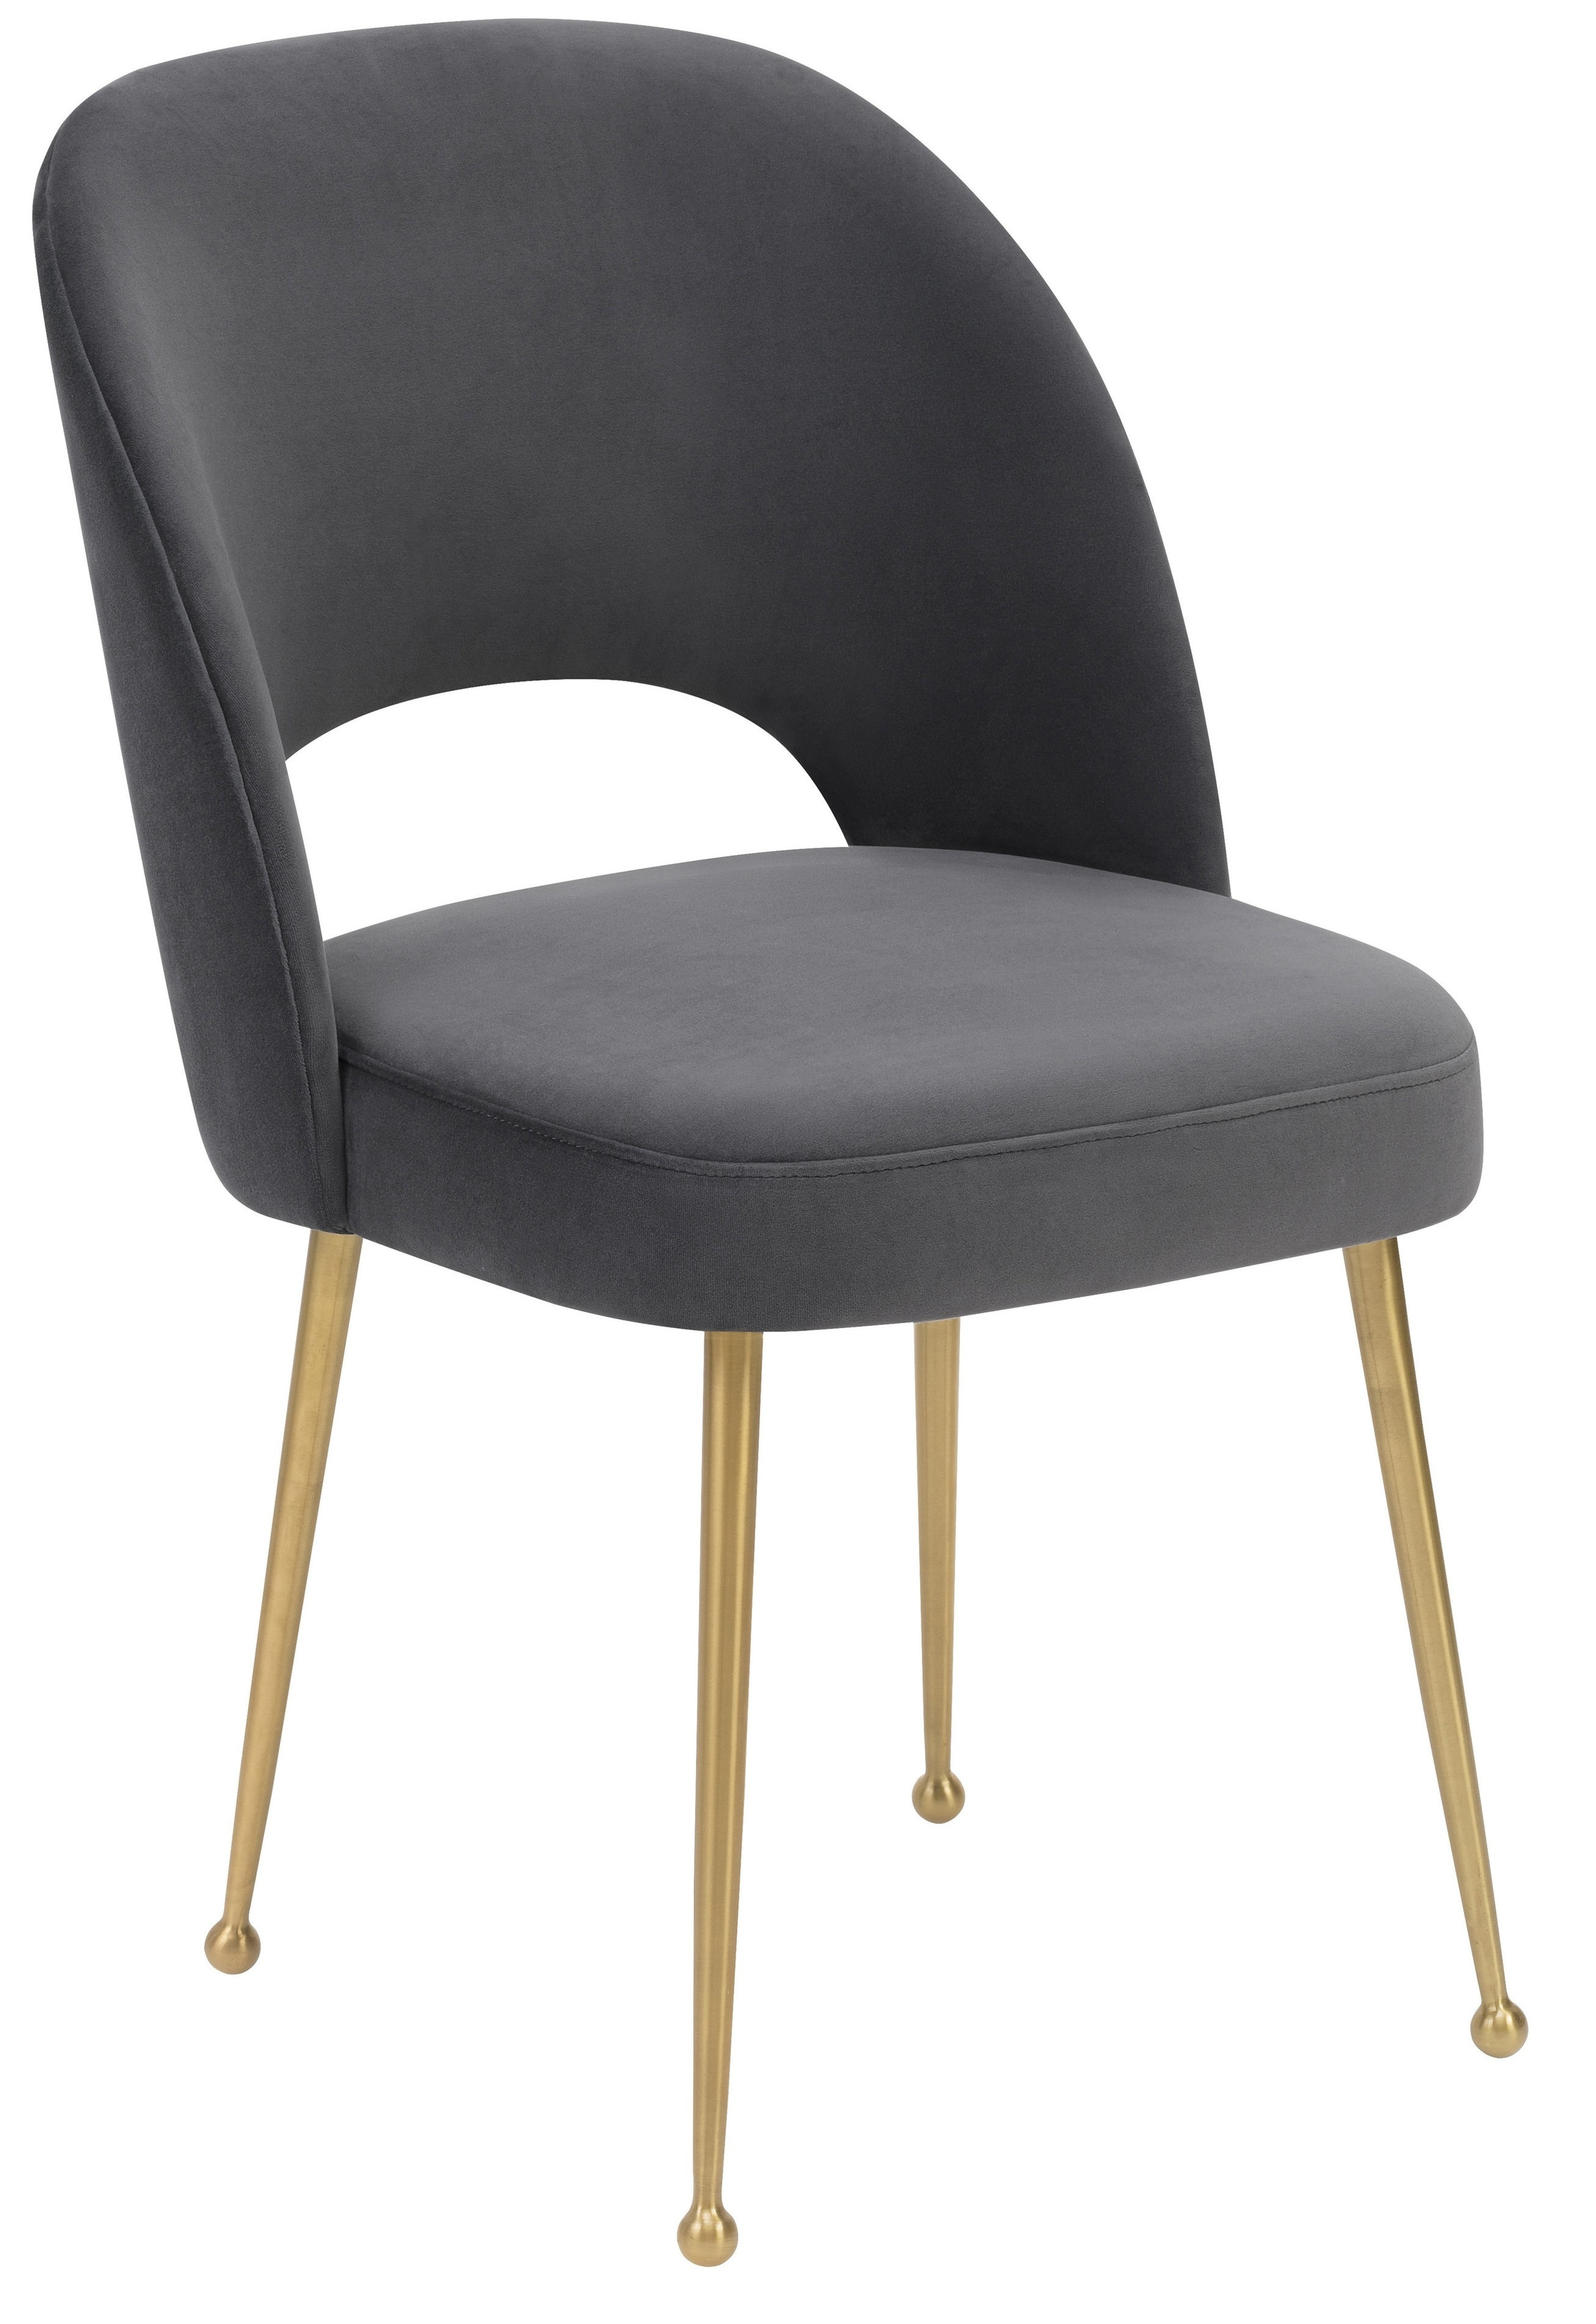 Betty Dining Chair, Charcoal With Regard To Well Known Charcoal Dining Chairs (#4 of 20)